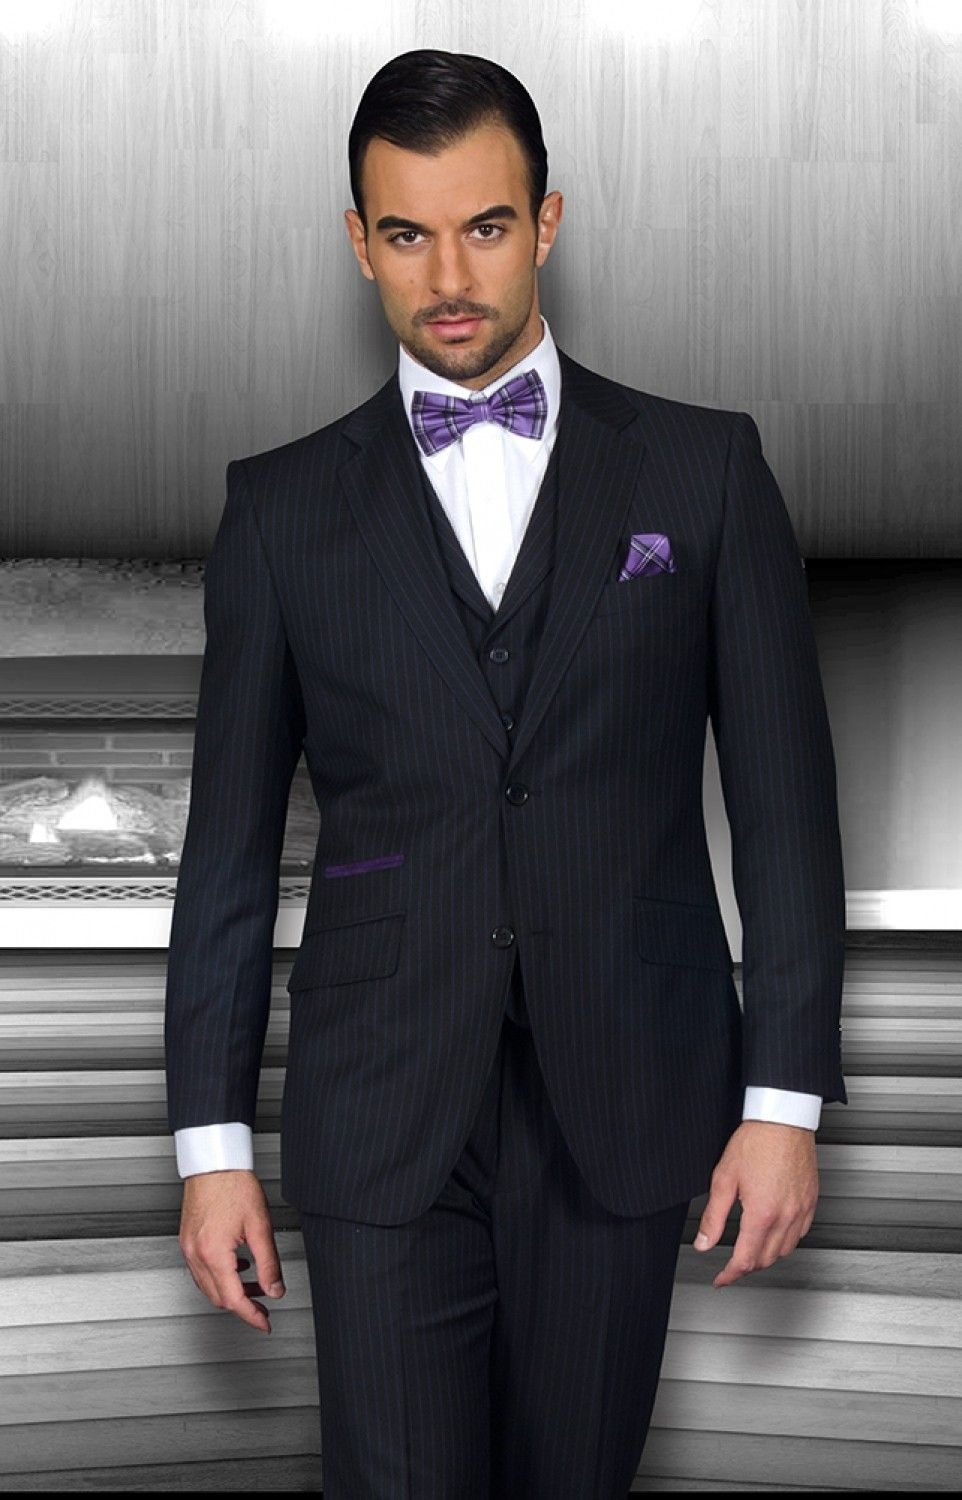 Doing purple right with a dashing pocket square and bowtie